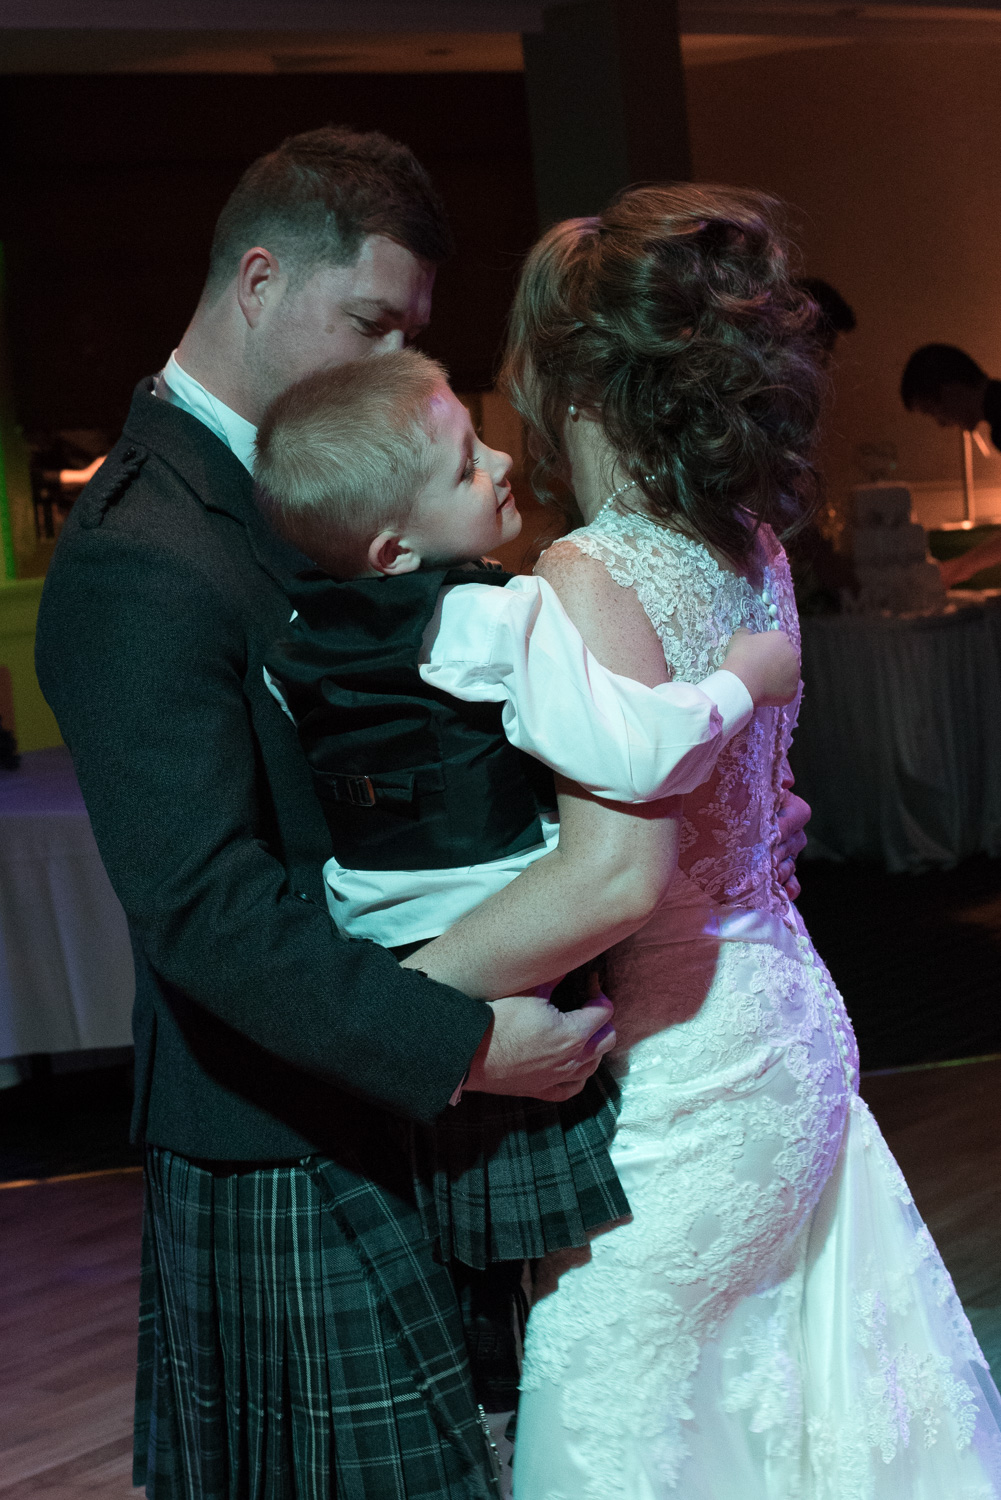 2016-11-05 Emma and John Anderson210849.jpg